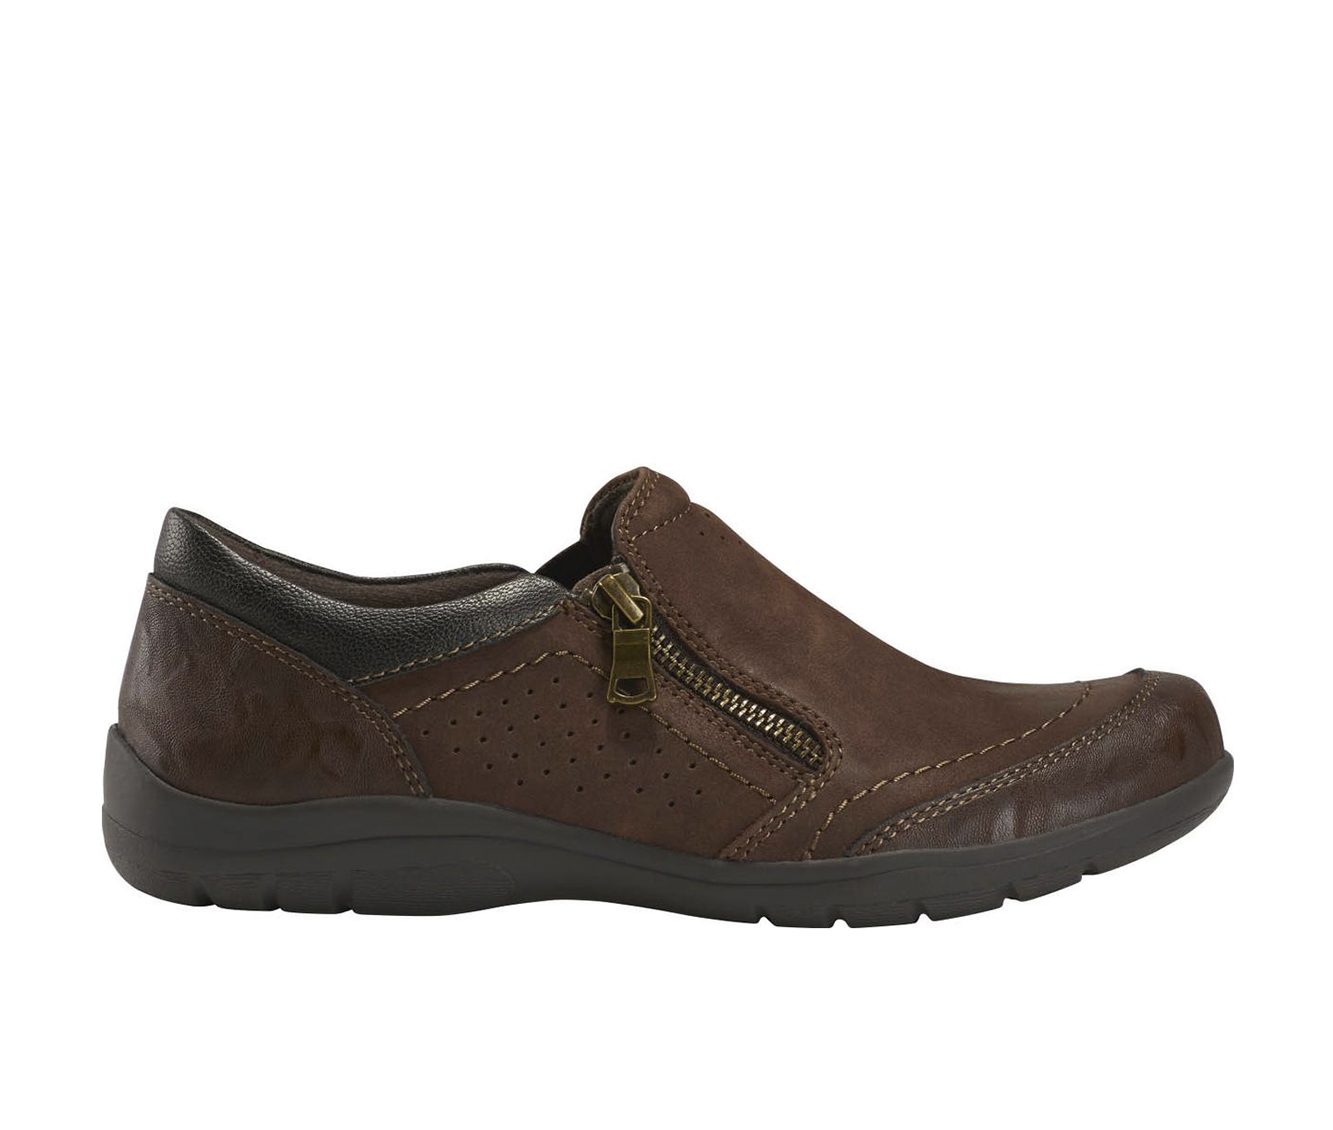 Earth Origins Rapid 2 Randall Women's Shoe (Brown Leather)